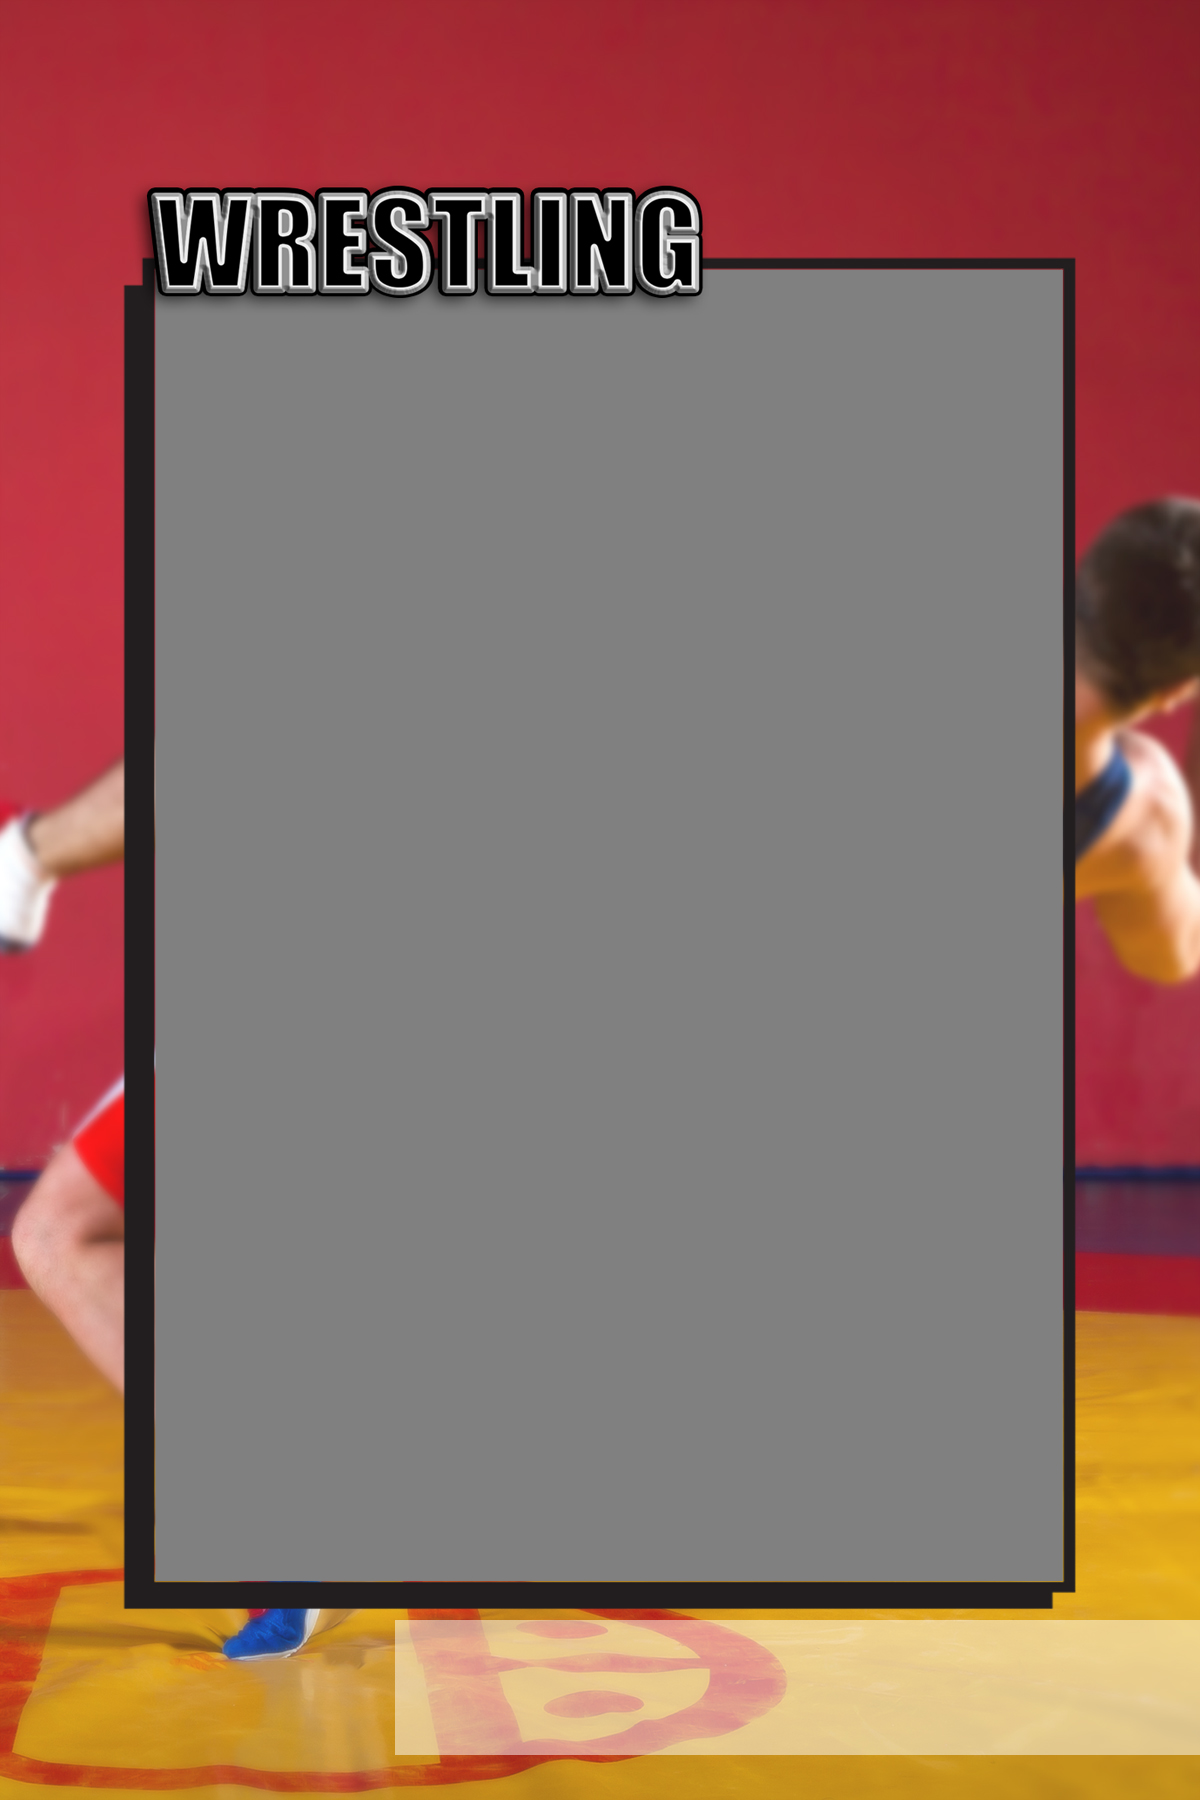 Sports Specific Wrestling Magnets 4x6 and 5x7